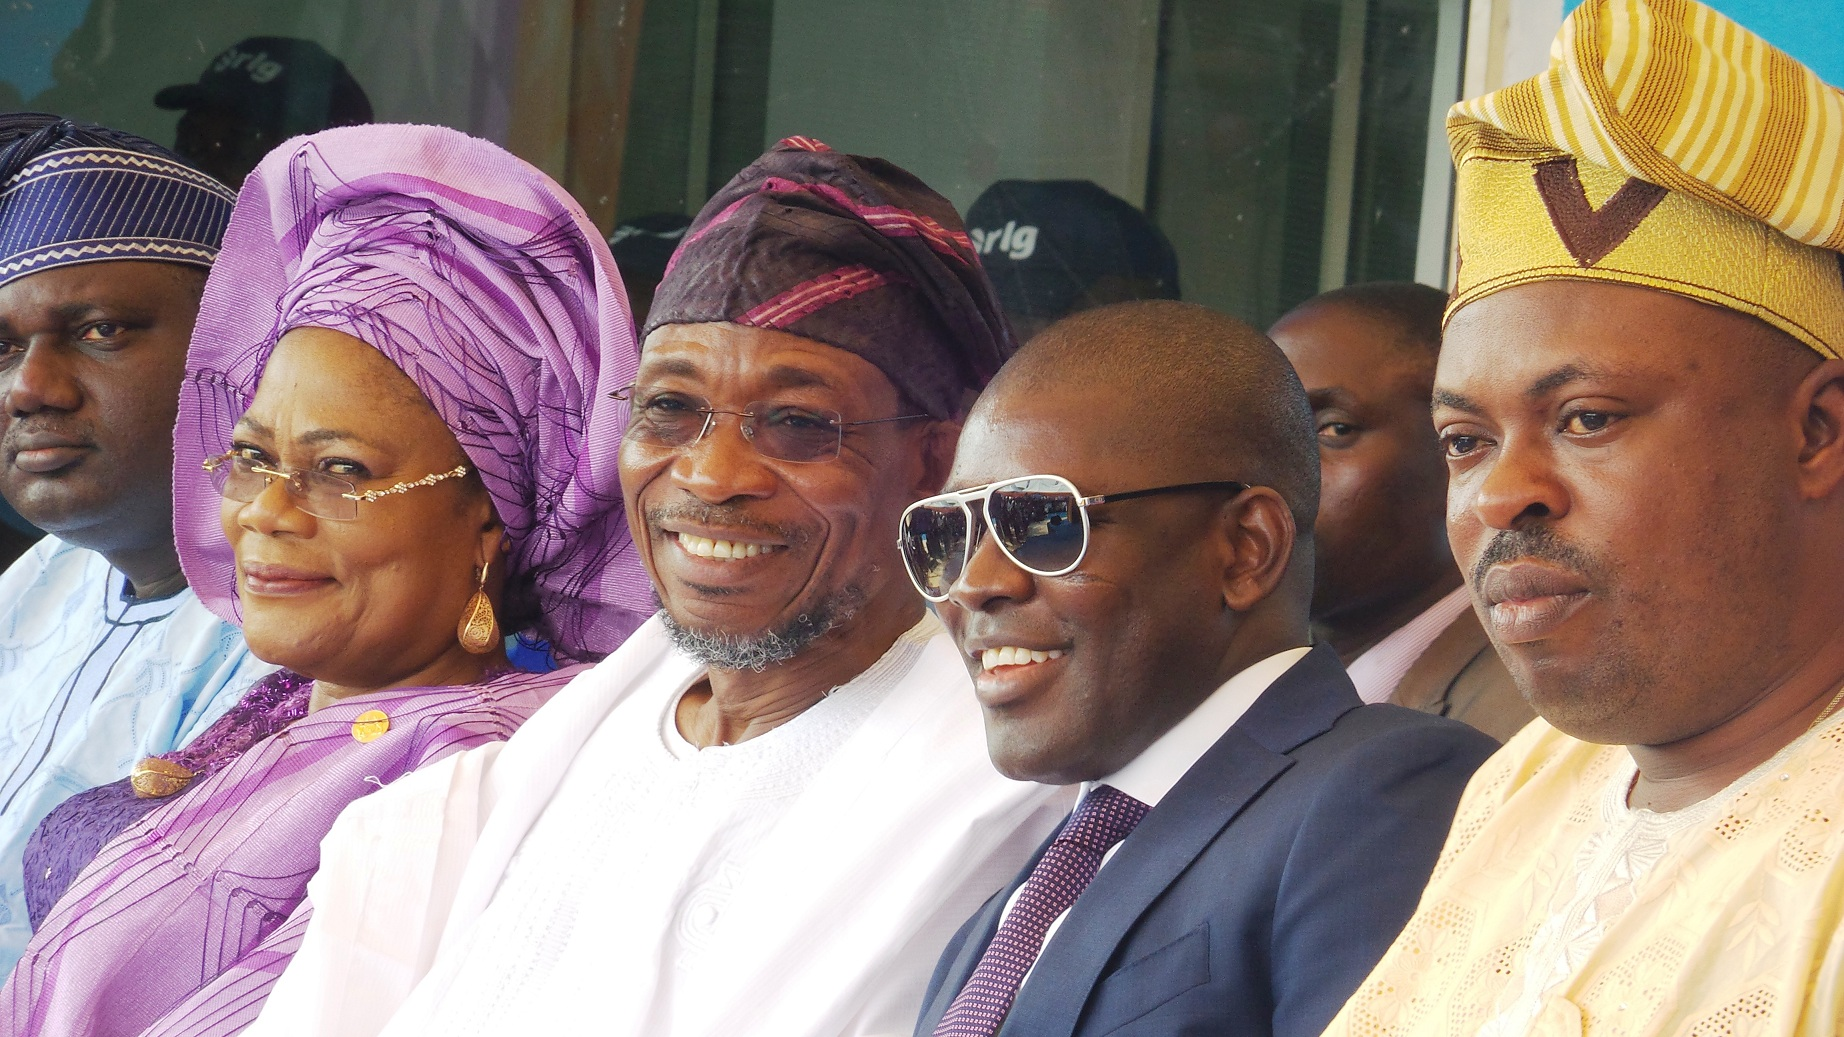 Governor State of Osun,  Ogbeni Rauf Aregbesola;  his Deputy, Mrs Titi Laoye-Tomori; Chairman,  RLG and AGAGAMS Holdings, Ghana, Mr Roland Agambire (2 right);  Acting Chairman, Osun APC, Elder Lowo Adebiyi (left) and Leader of the State House of Assembly in Osun, Hon. Timothy Owoeye, during the commissioning of RLG/Adulawo Technology City,  at Ilesa/Akure Express Way, Ilesa, State of Osun, on Thursday 30 - 01 - 2014